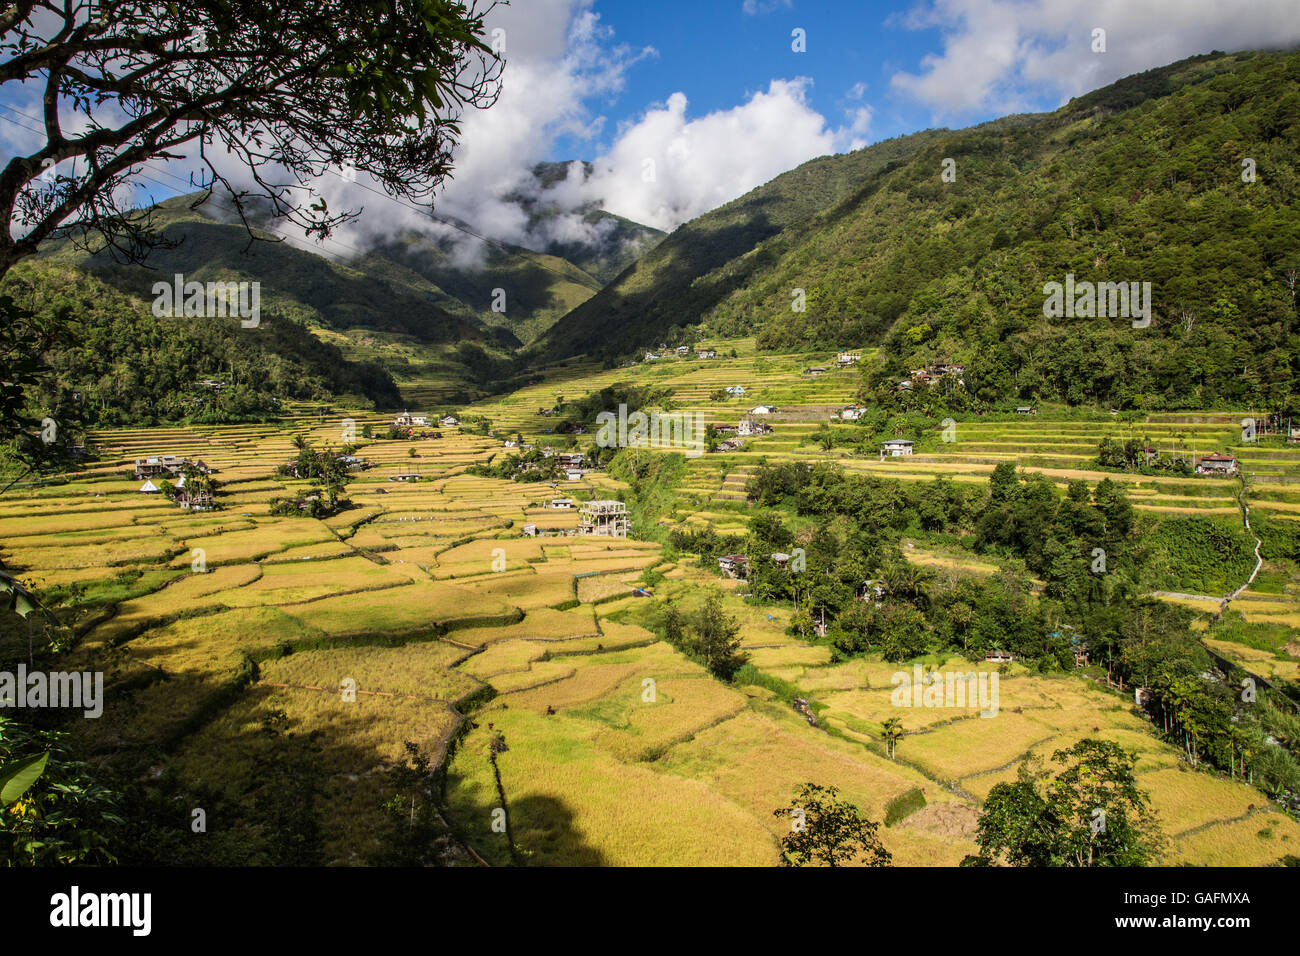 Hungduan Hapao rice terraces near Banaue is expansive with scattered village huts between the paddies. - Stock Image